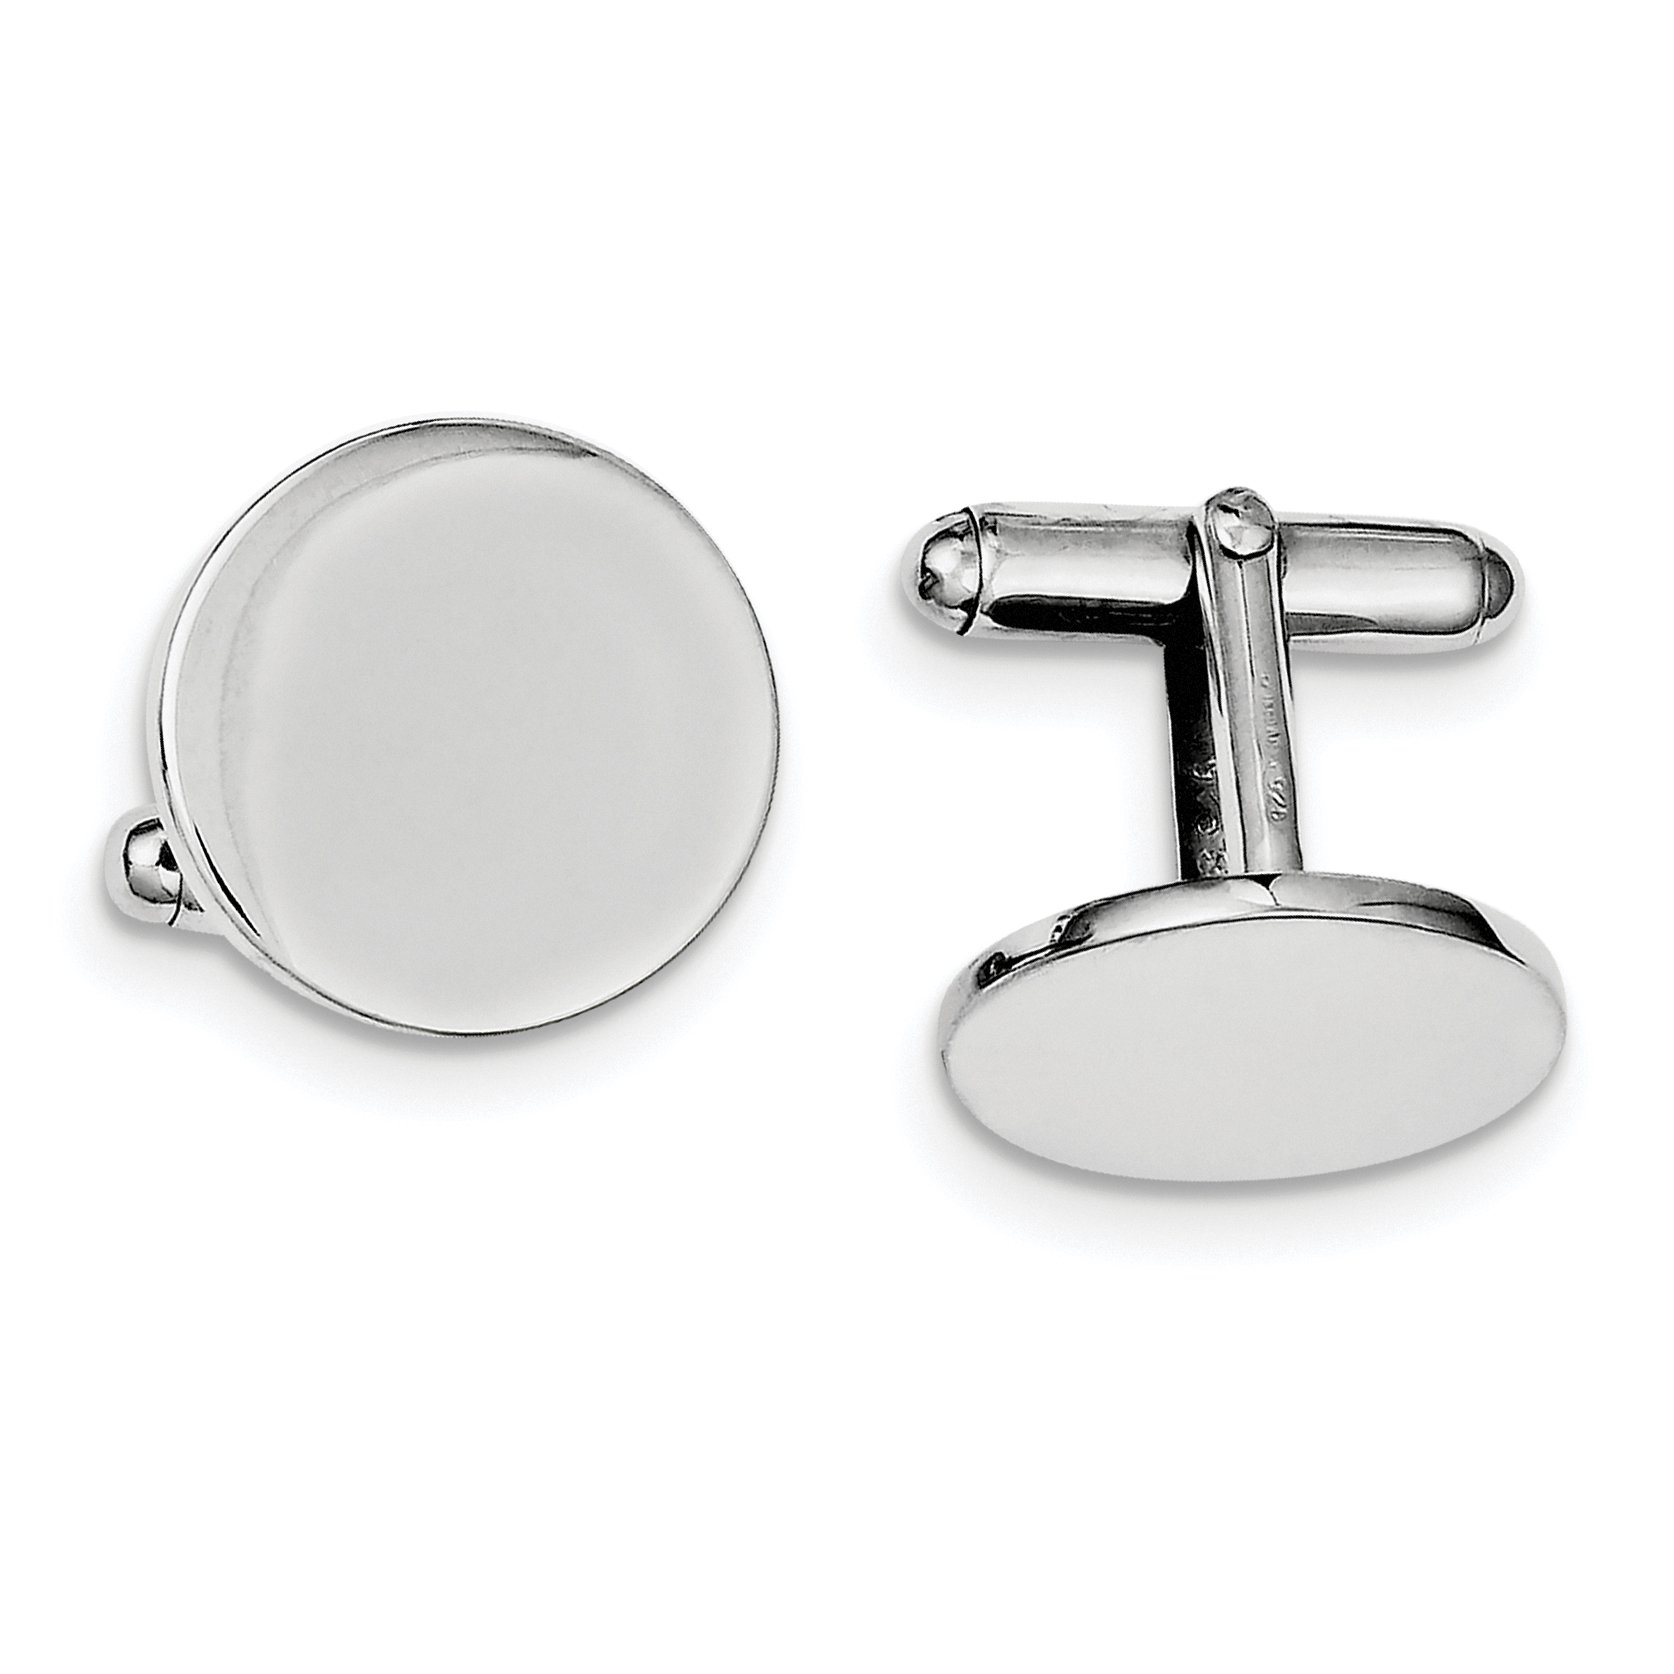 ICE CARATS 925 Sterling Silver Round Cuff Links Mens Cufflinks Man Link Fine Jewelry Dad Mens Gift by ICE CARATS (Image #1)